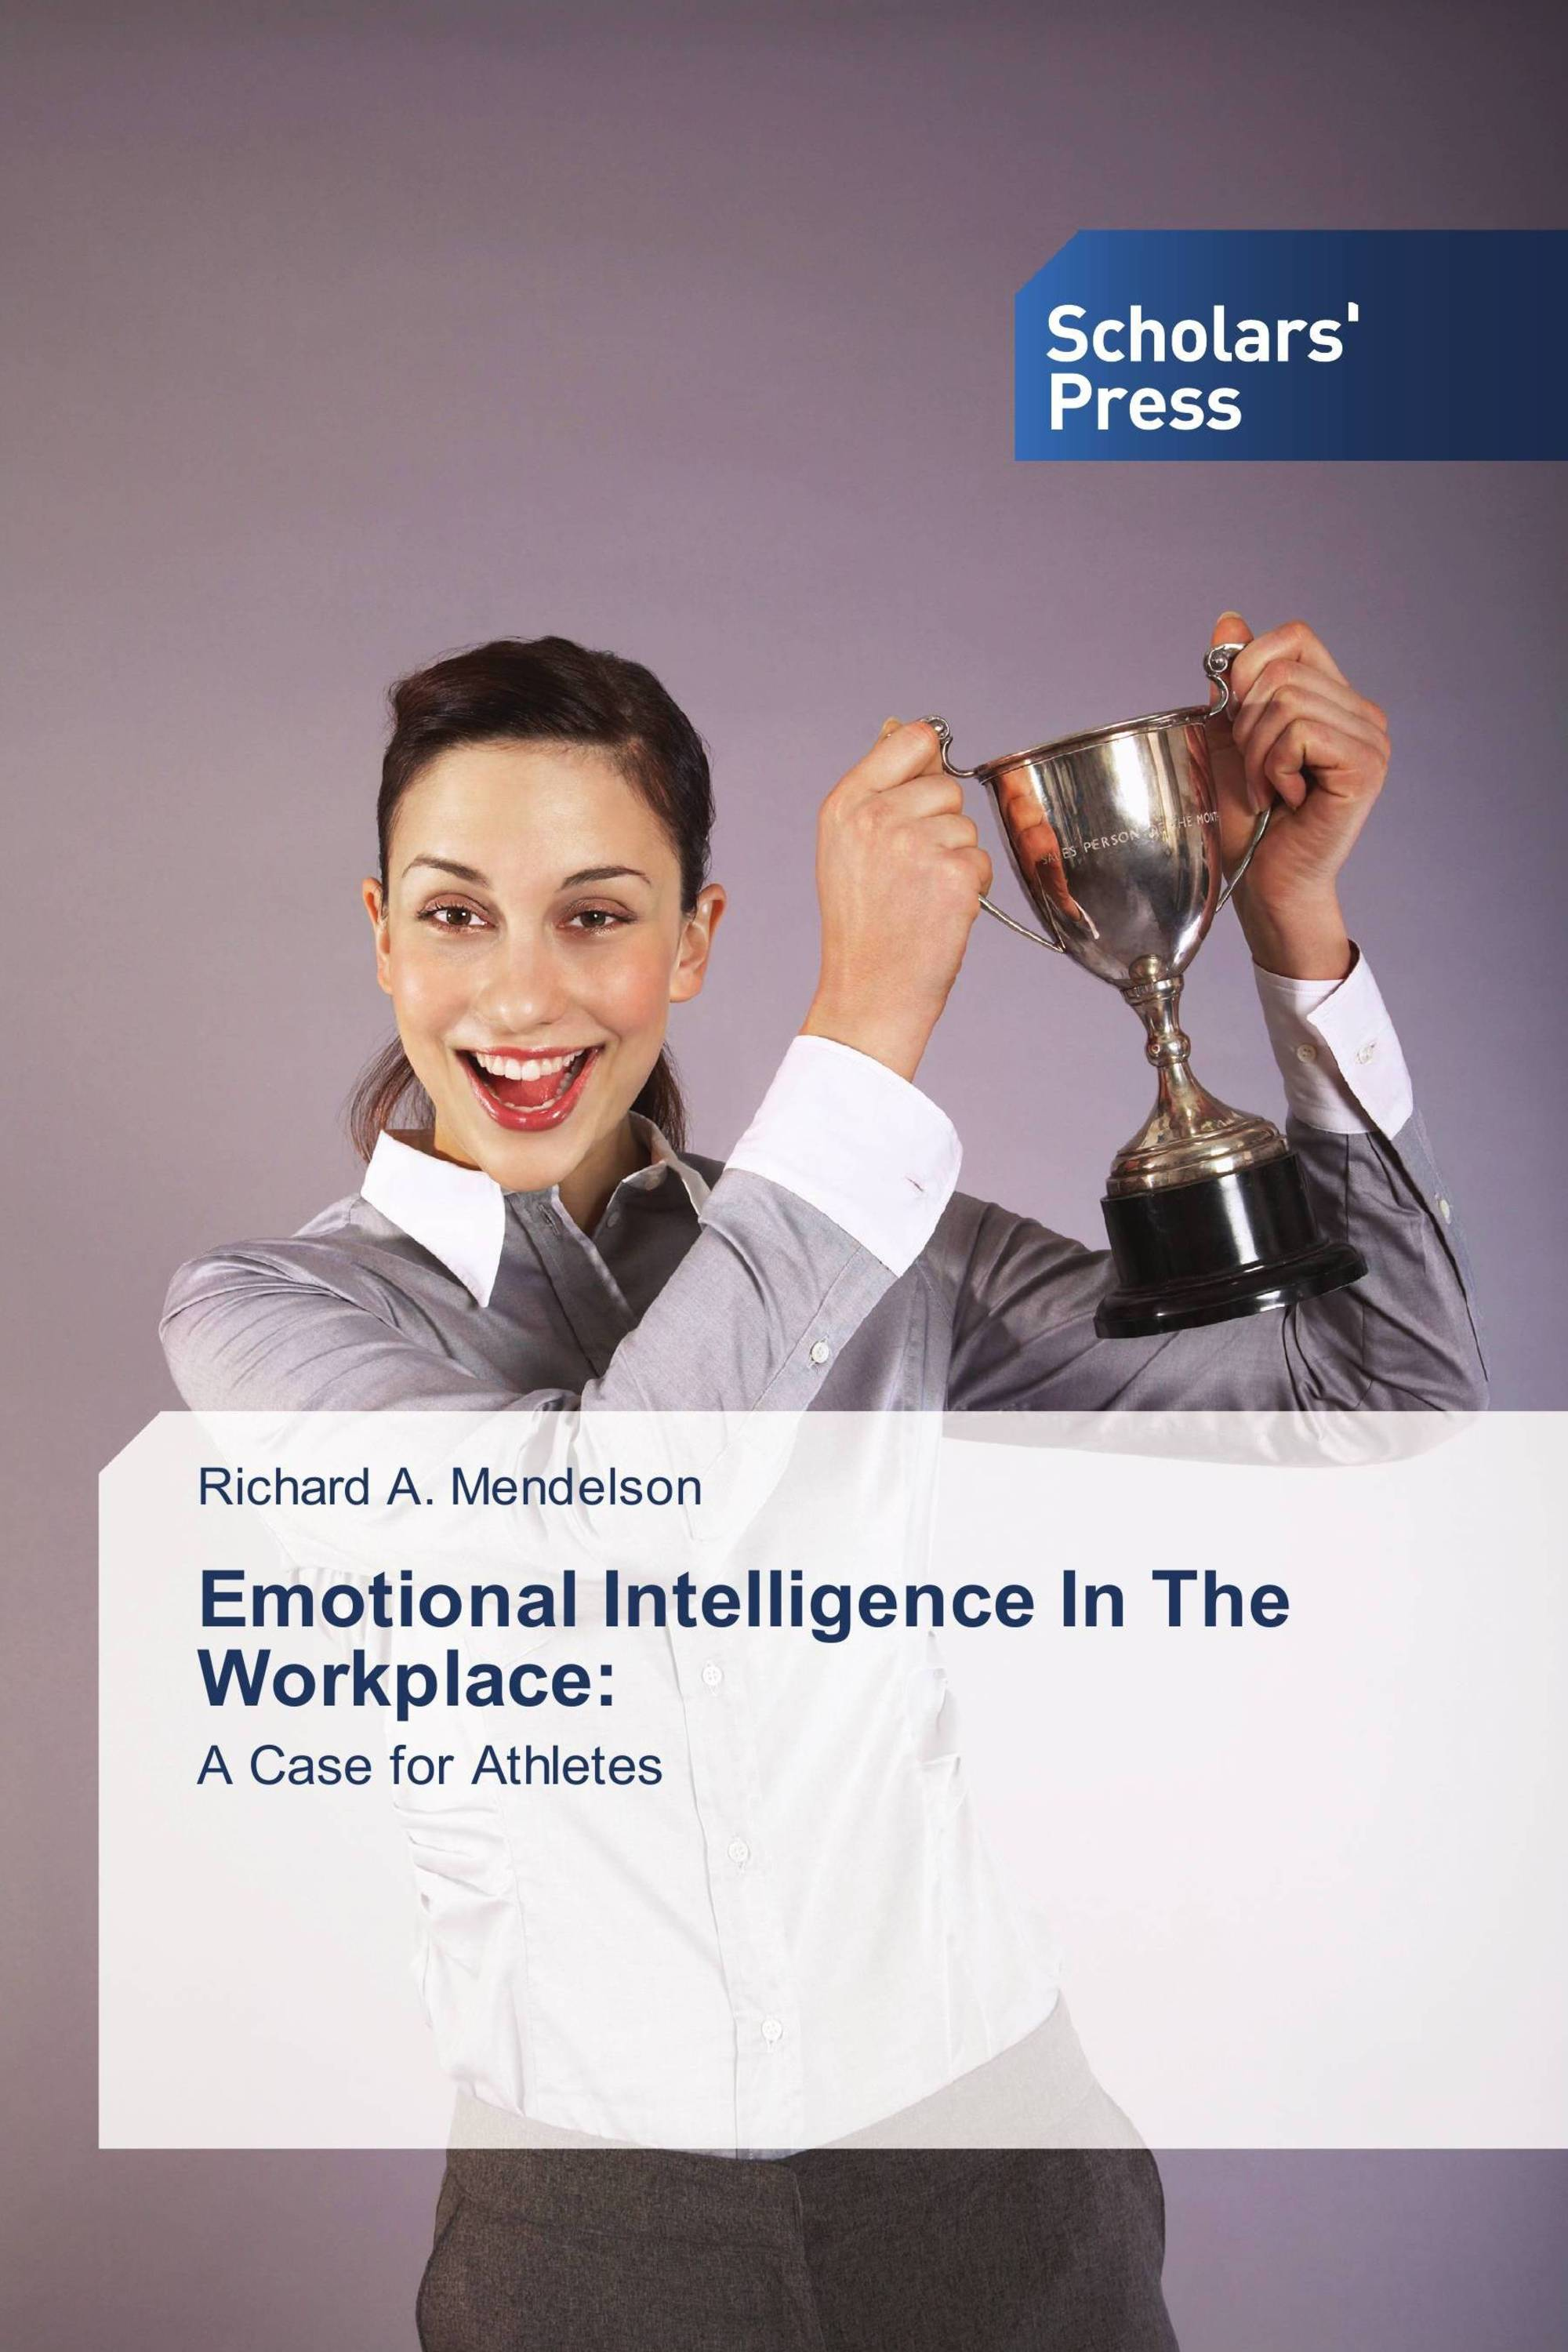 emotional intelligence in the workplace Learn how to improve emotional intelligence in the workplace emotional intelligence (eq), is the ability to perceive, control and evaluate emotional cues the harvard business review called goleman's work on emotional intelligence a revolutionary, paradigm-shattering idea.